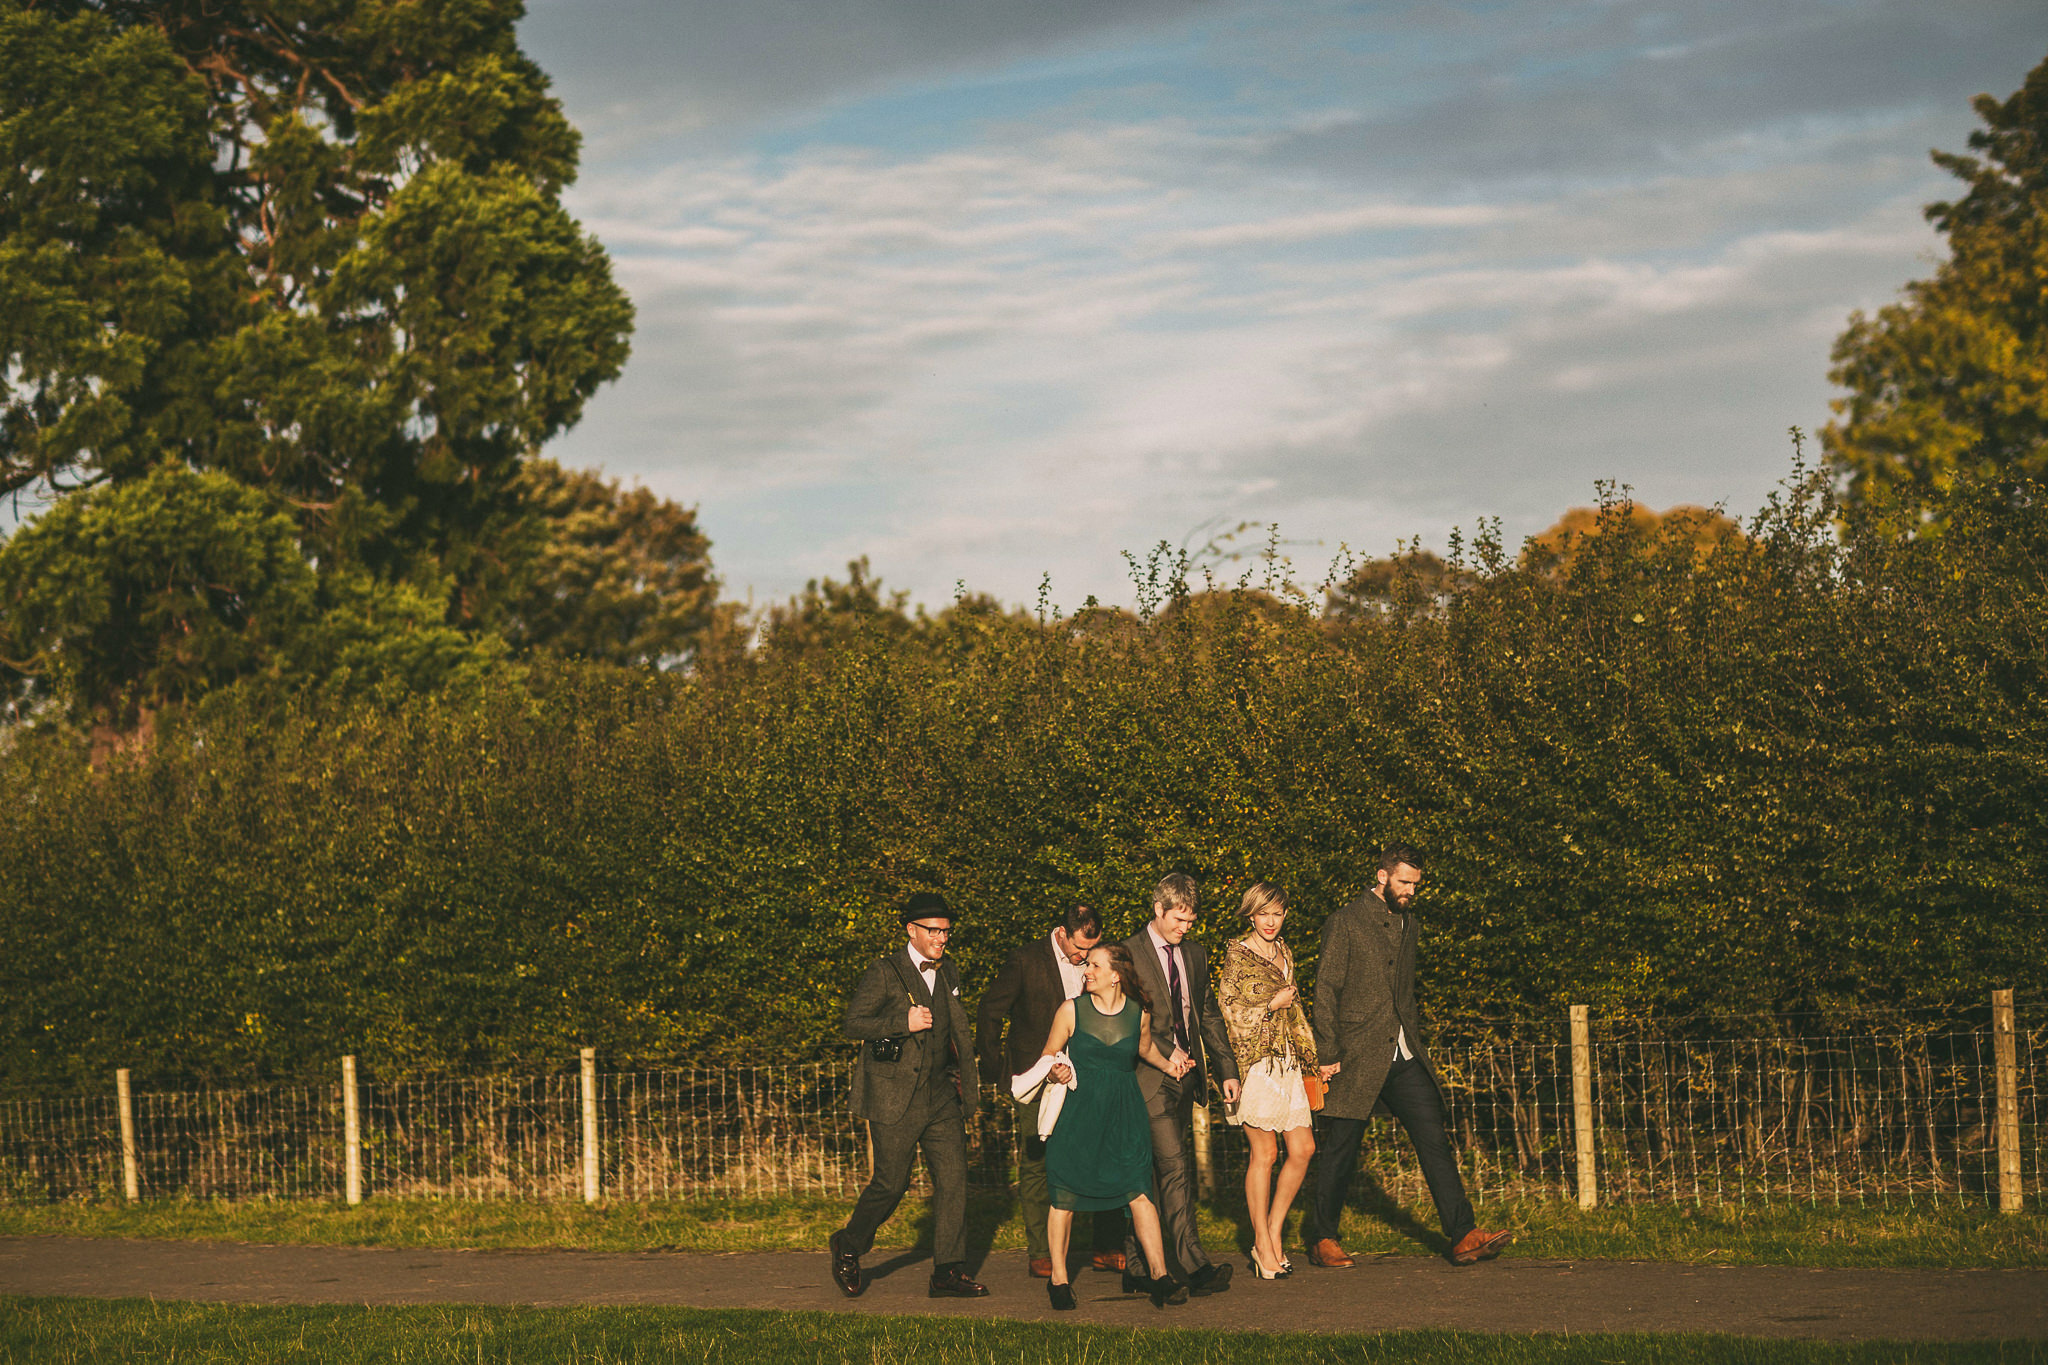 normaton-church-leicestershire-rutland-wedding-photography-photographer-90023